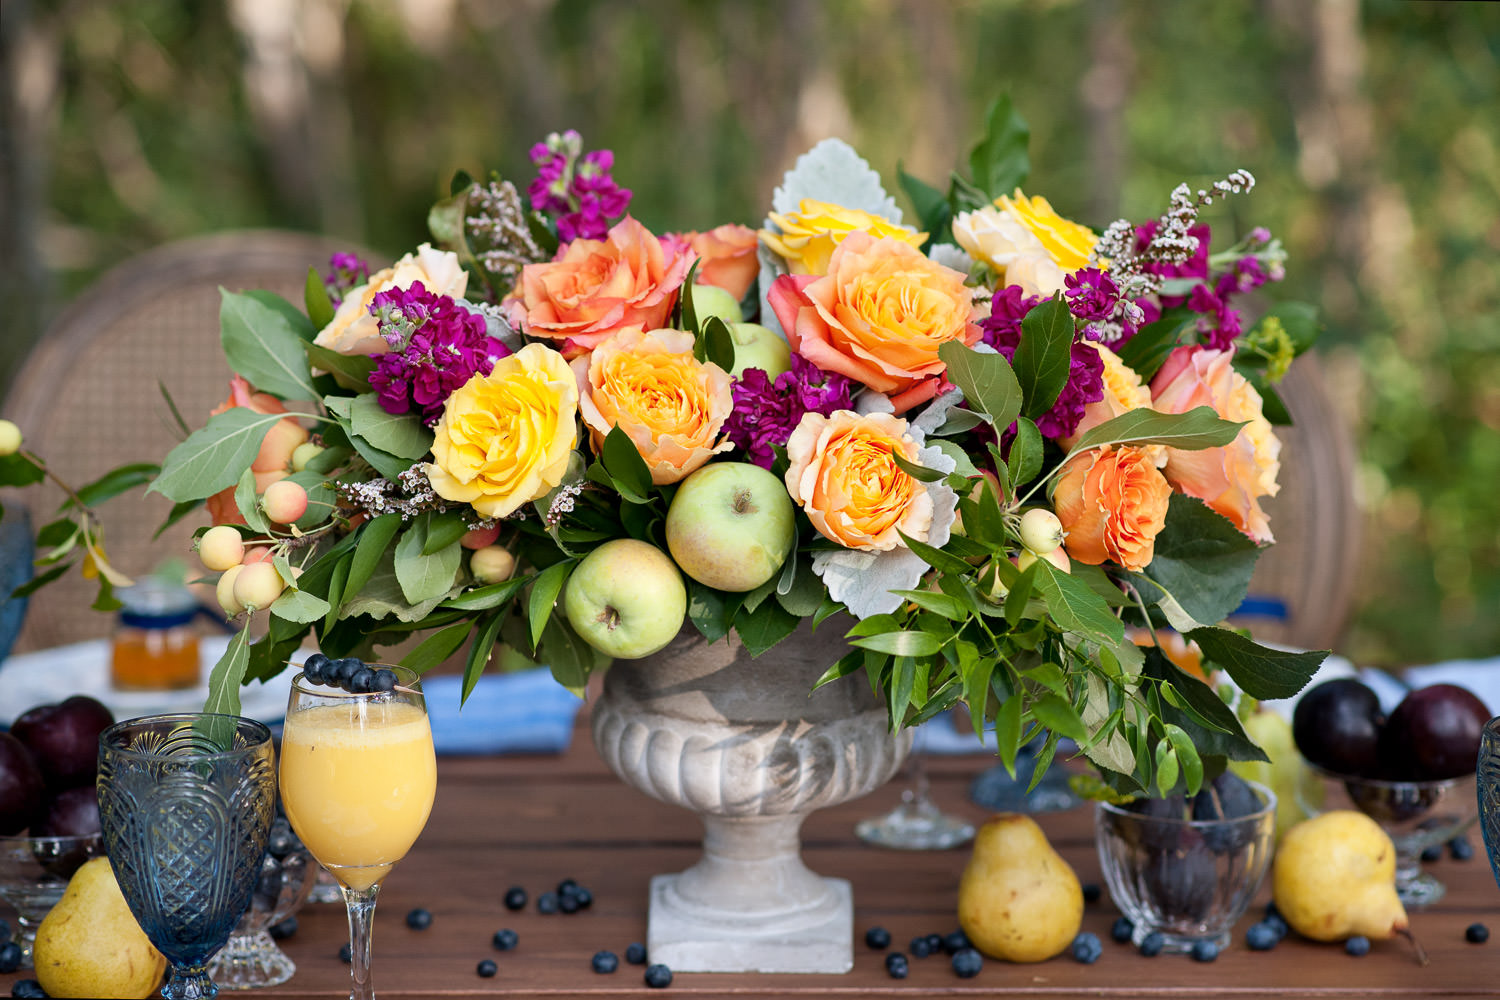 fruit and florals for table decor at a summer wedding captured by Tara Whittaker Photography